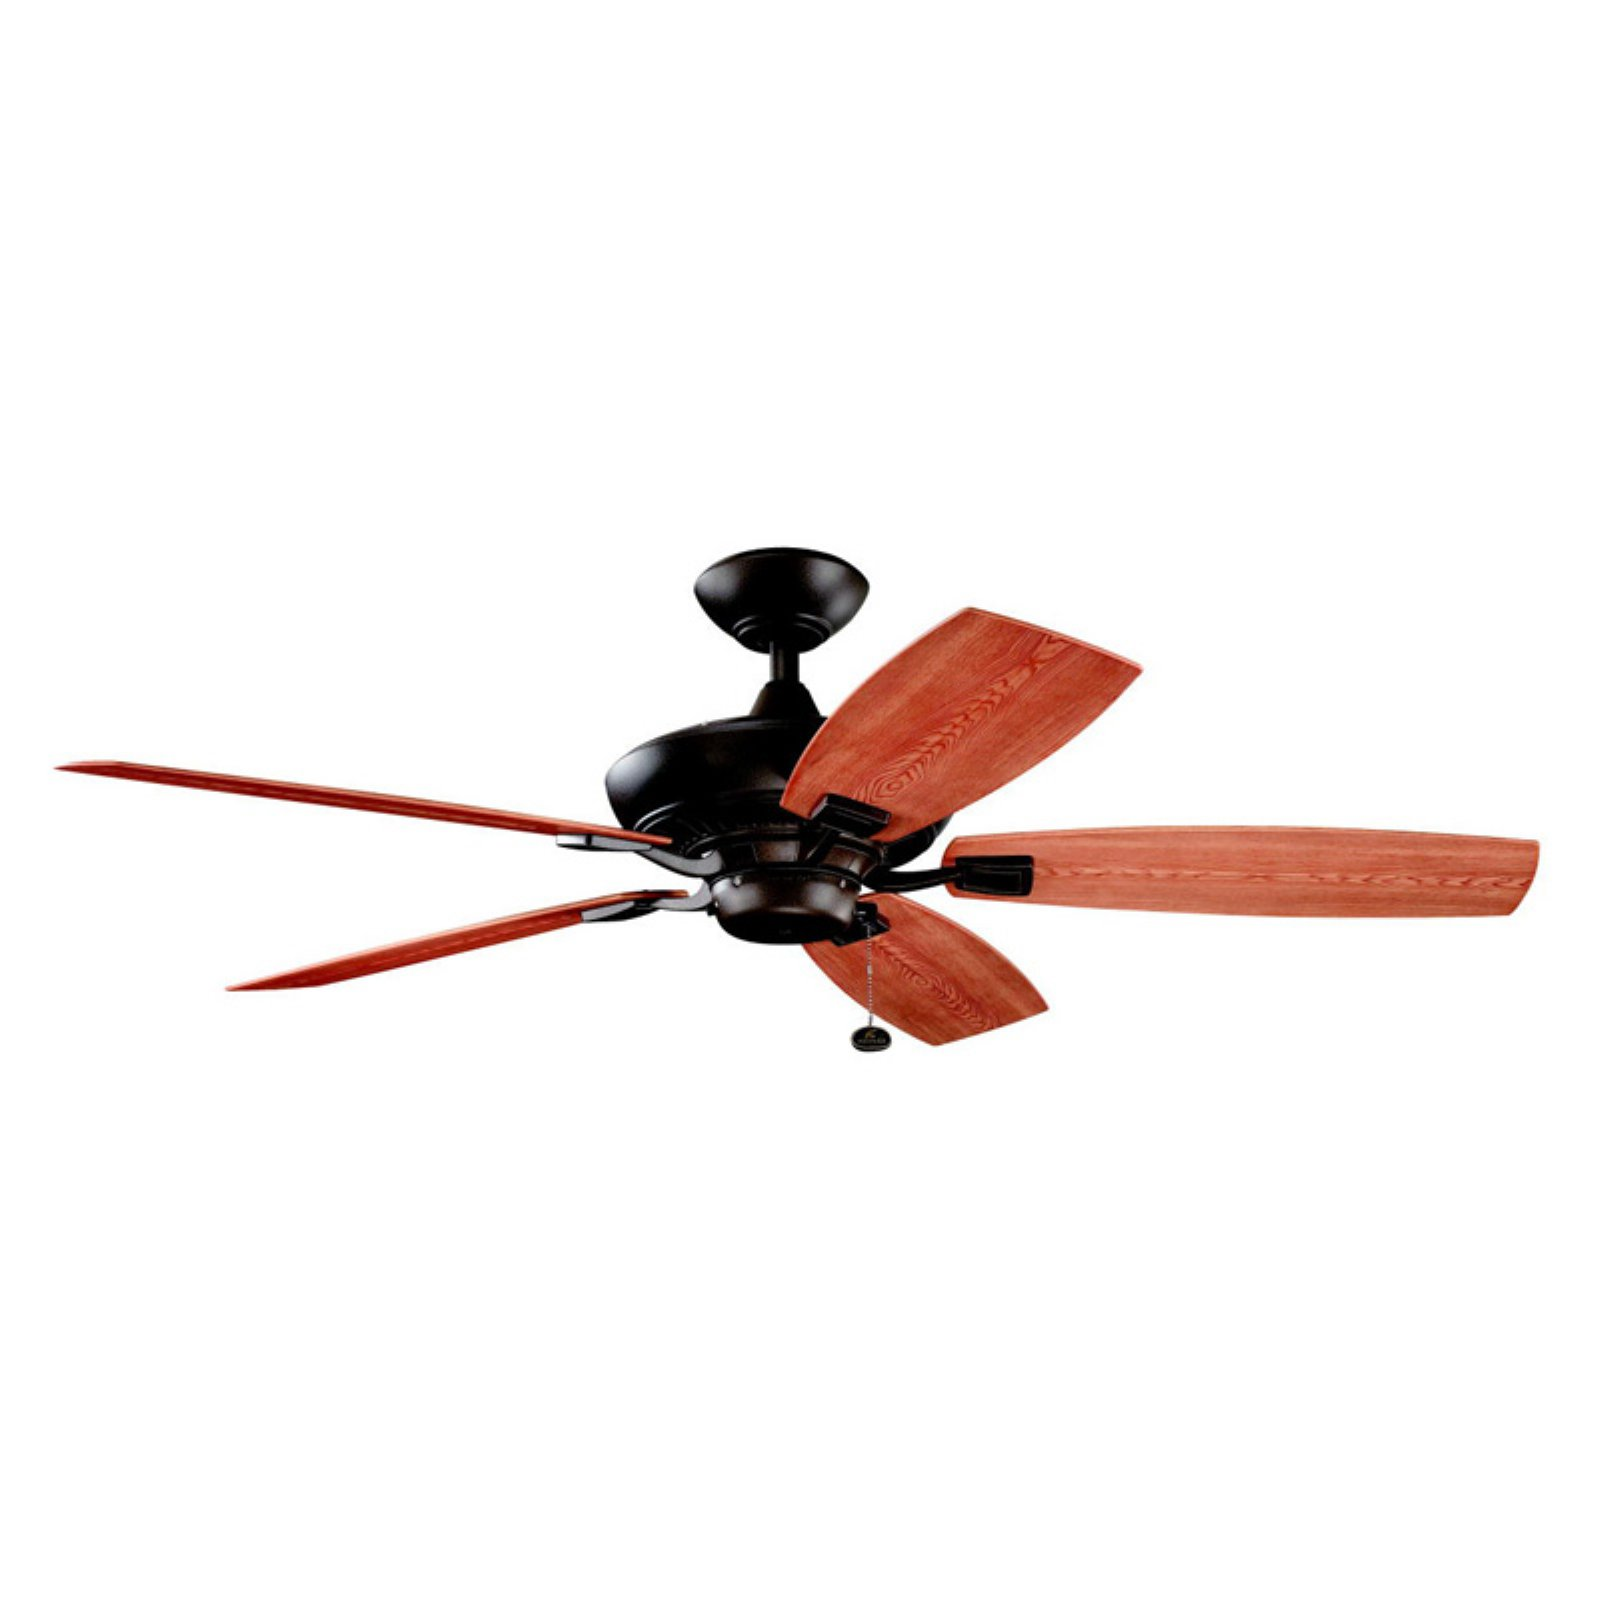 Kichler Canfield Patio 310192 52 in. Outdoor Ceiling Fan